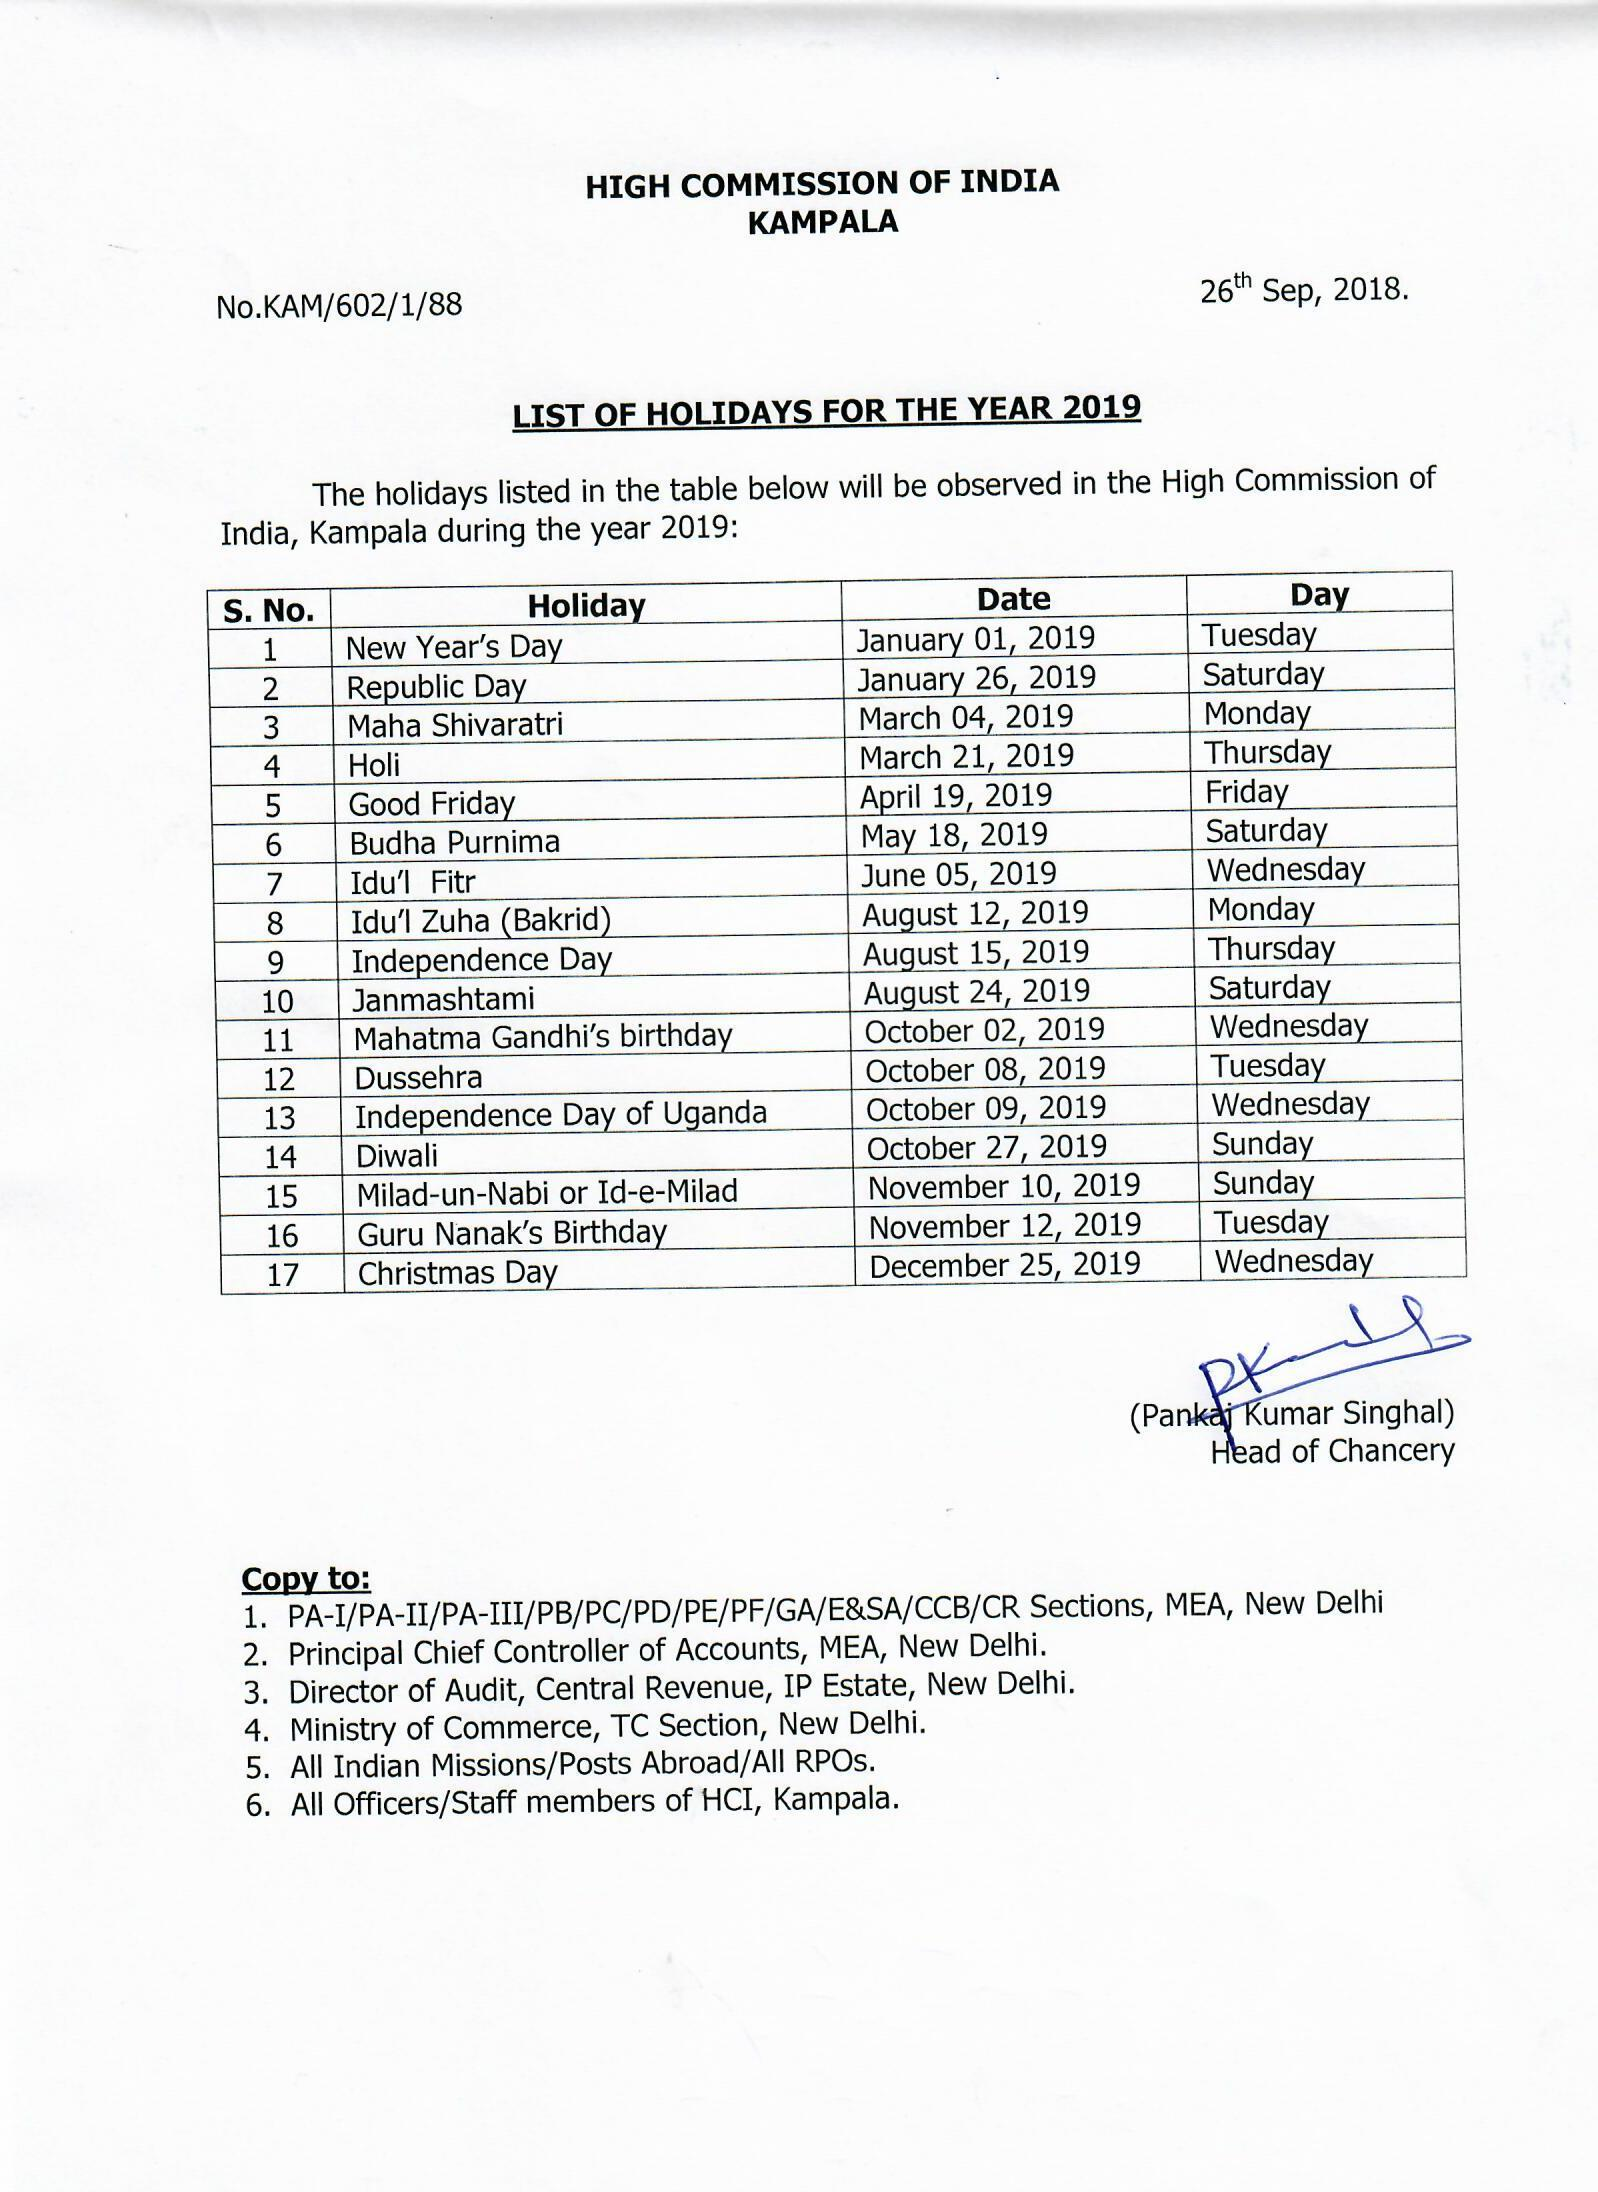 High Commission List Of Holidays